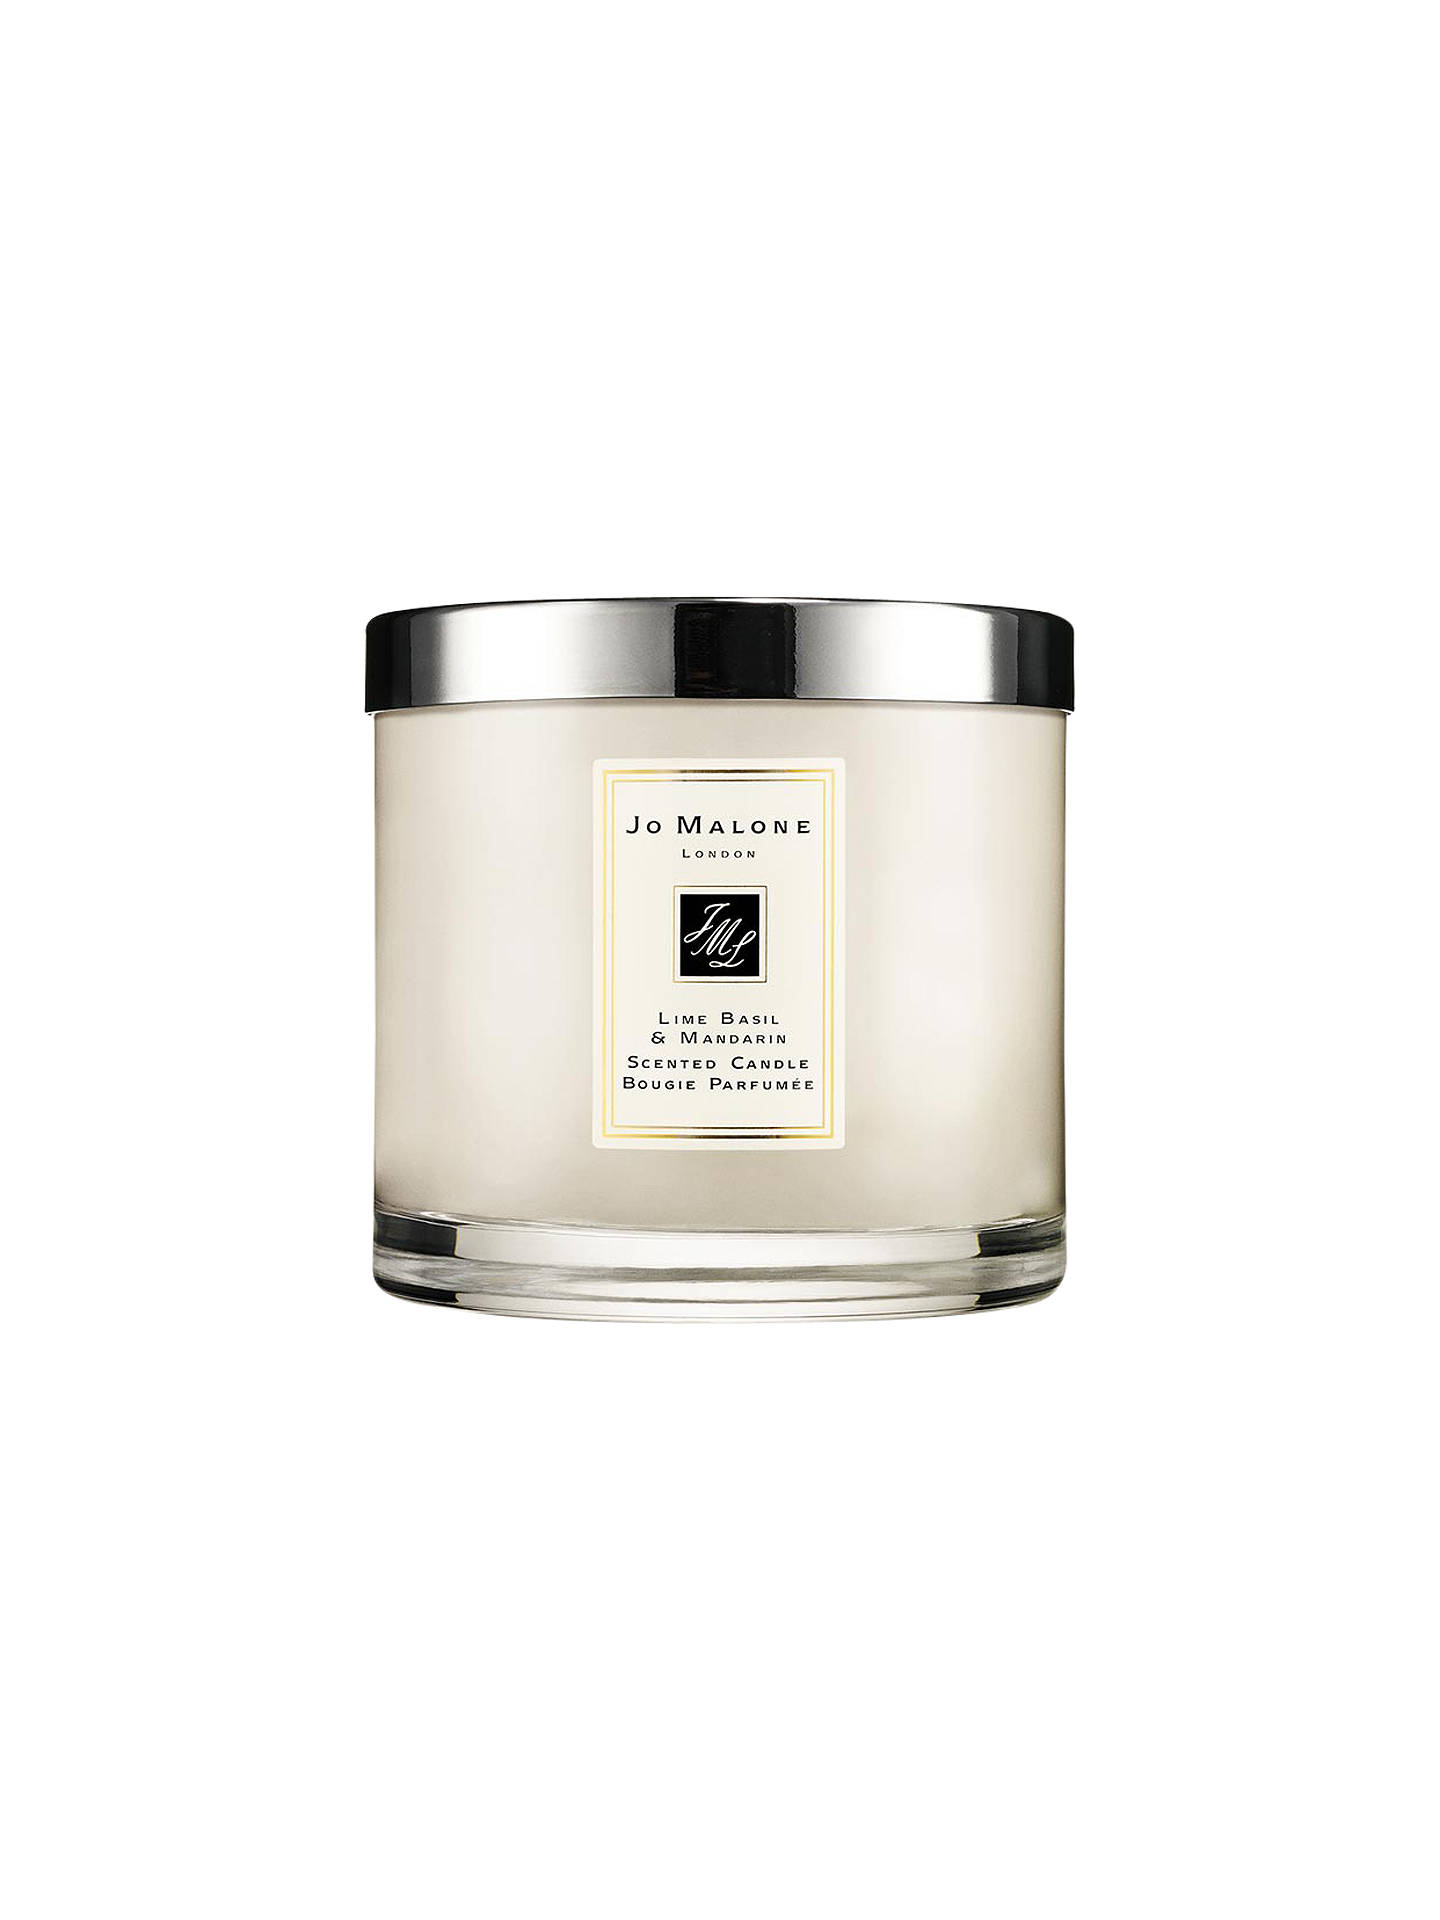 BuyJo Malone London Lime Basil & Mandarin Deluxe Scented Candle, 600g Online at johnlewis.com